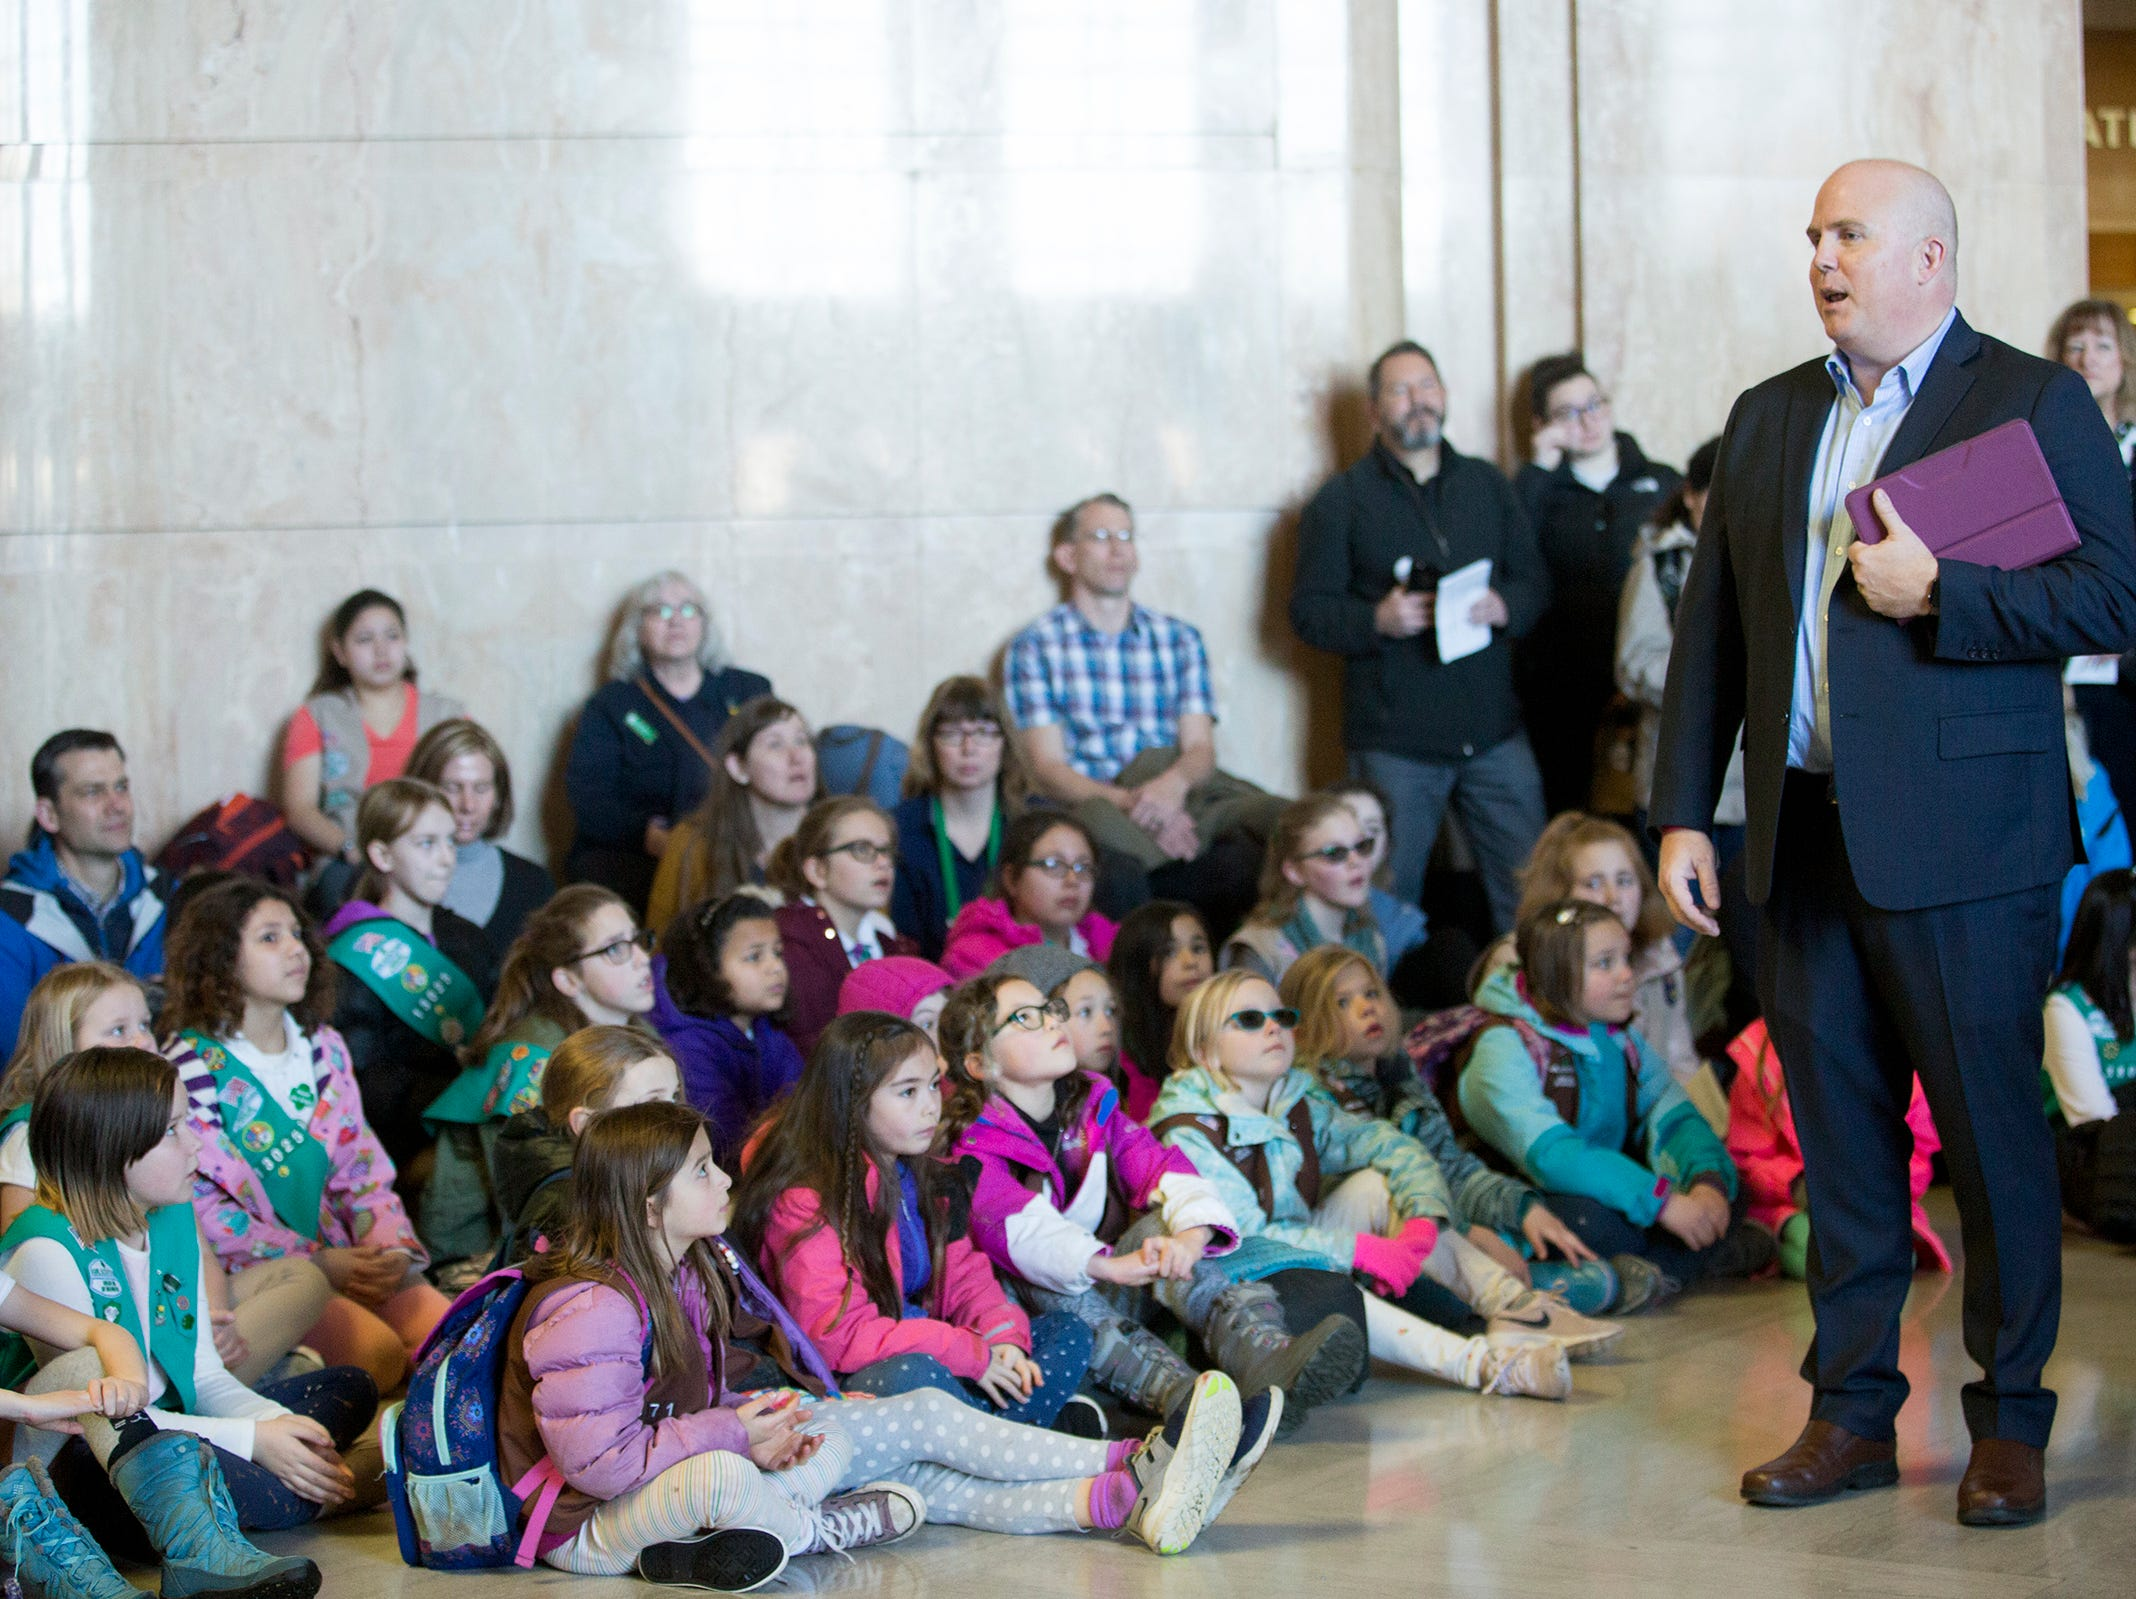 Rep. Brian Clem, D-Salem, speaks to Girl Scouts from across the state during Girl Scout Leadership Day at the Oregon State Capitol in Salem March 12, 2019.